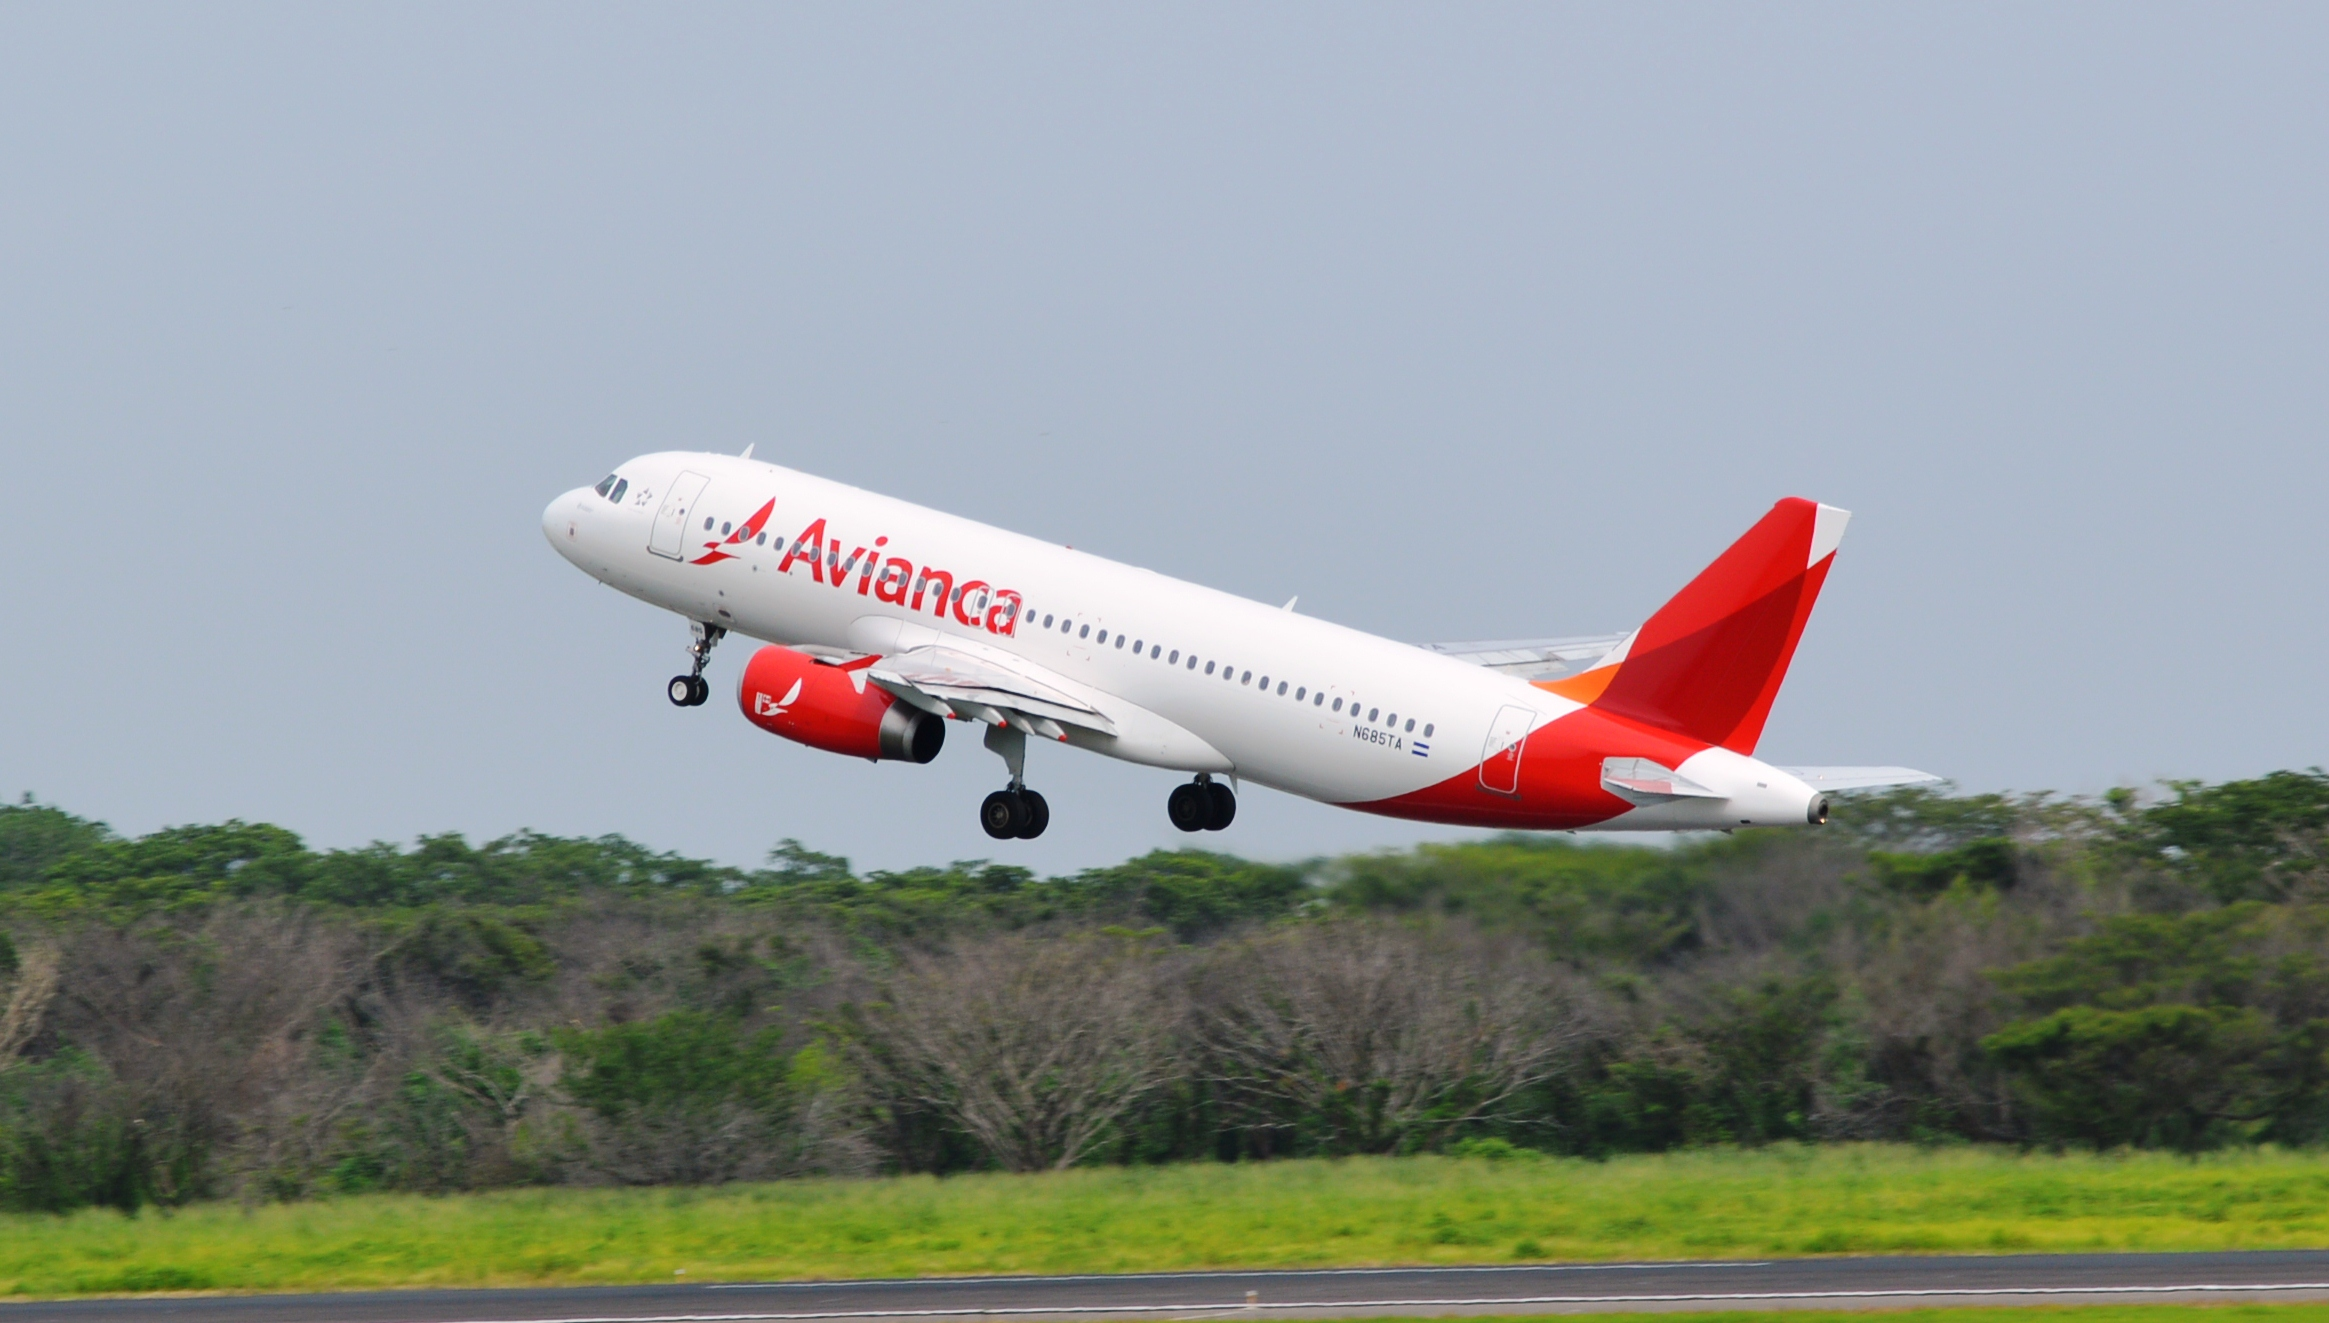 Avianca upgraded its 2019 Dreamliner deliveries to the B787-9